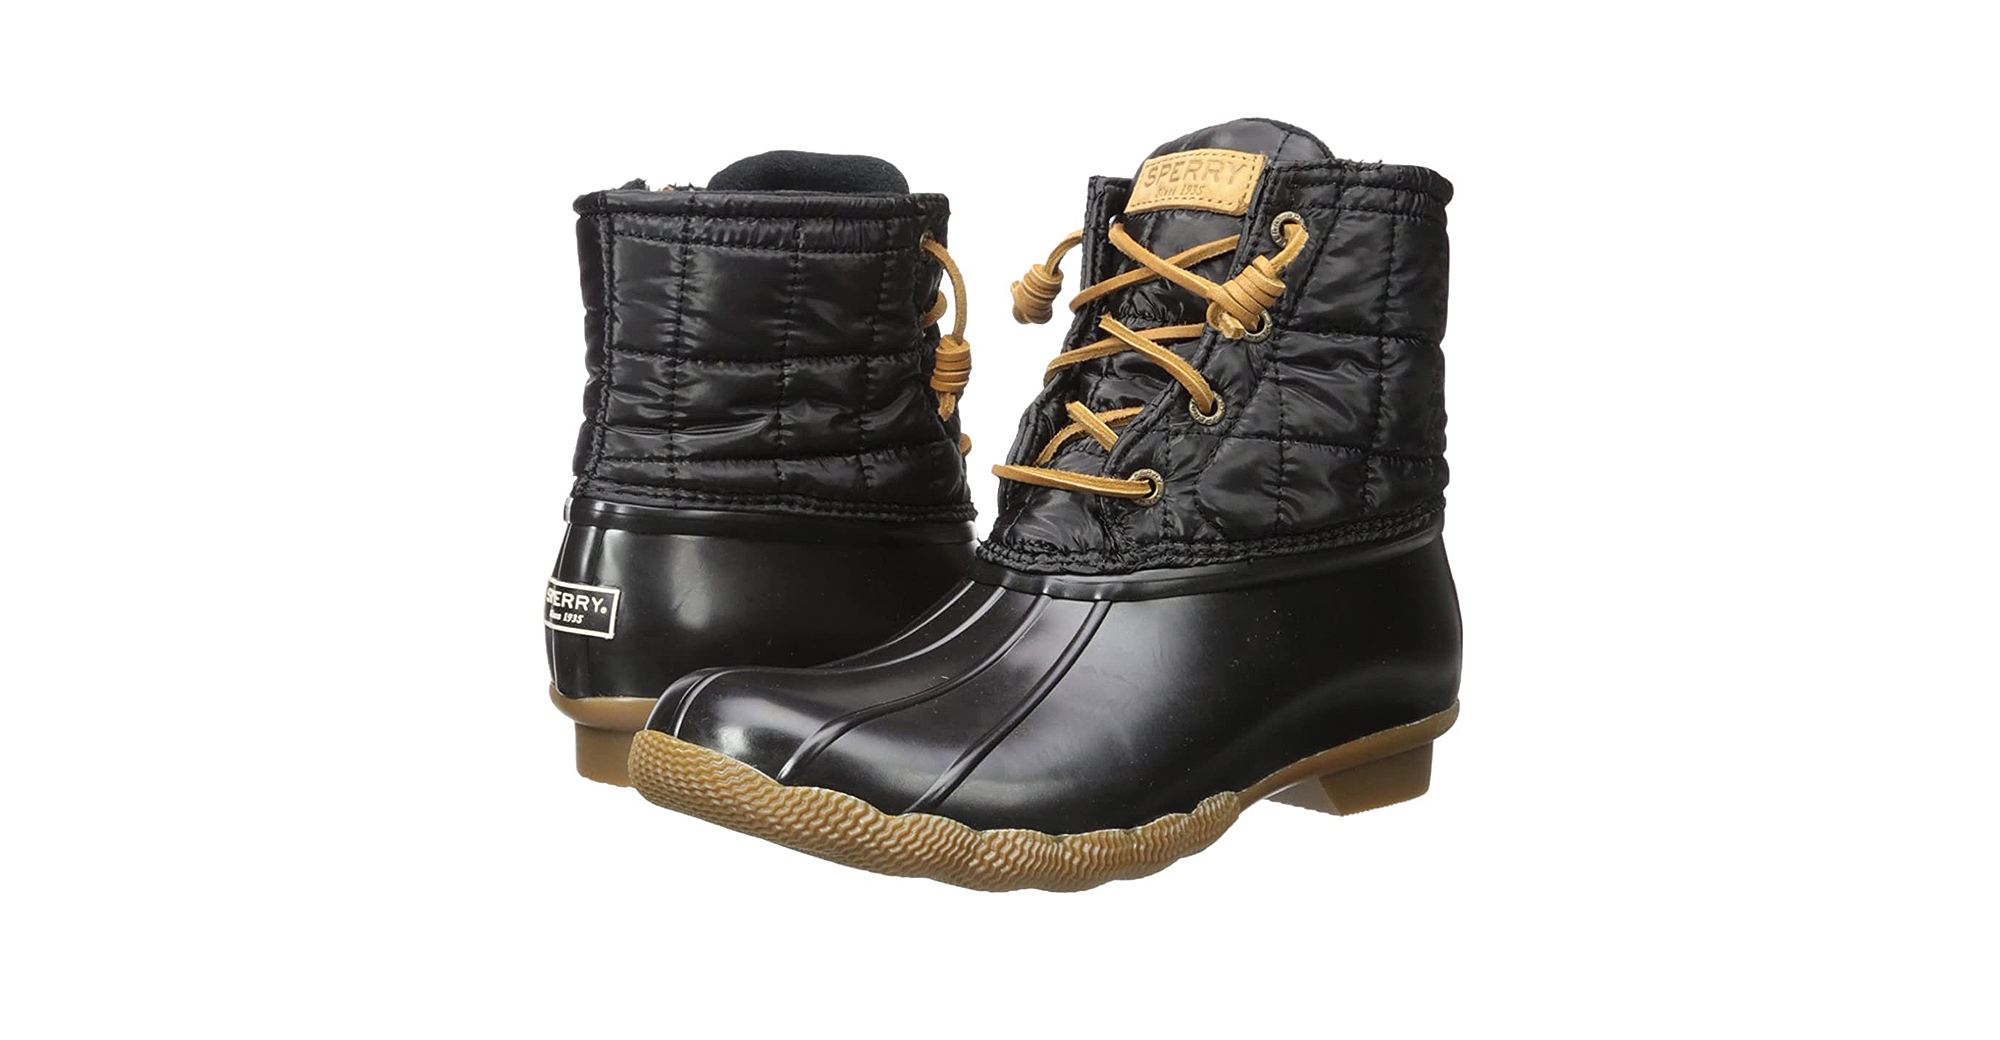 Sperry Boots Are Up to 60% Off Pre